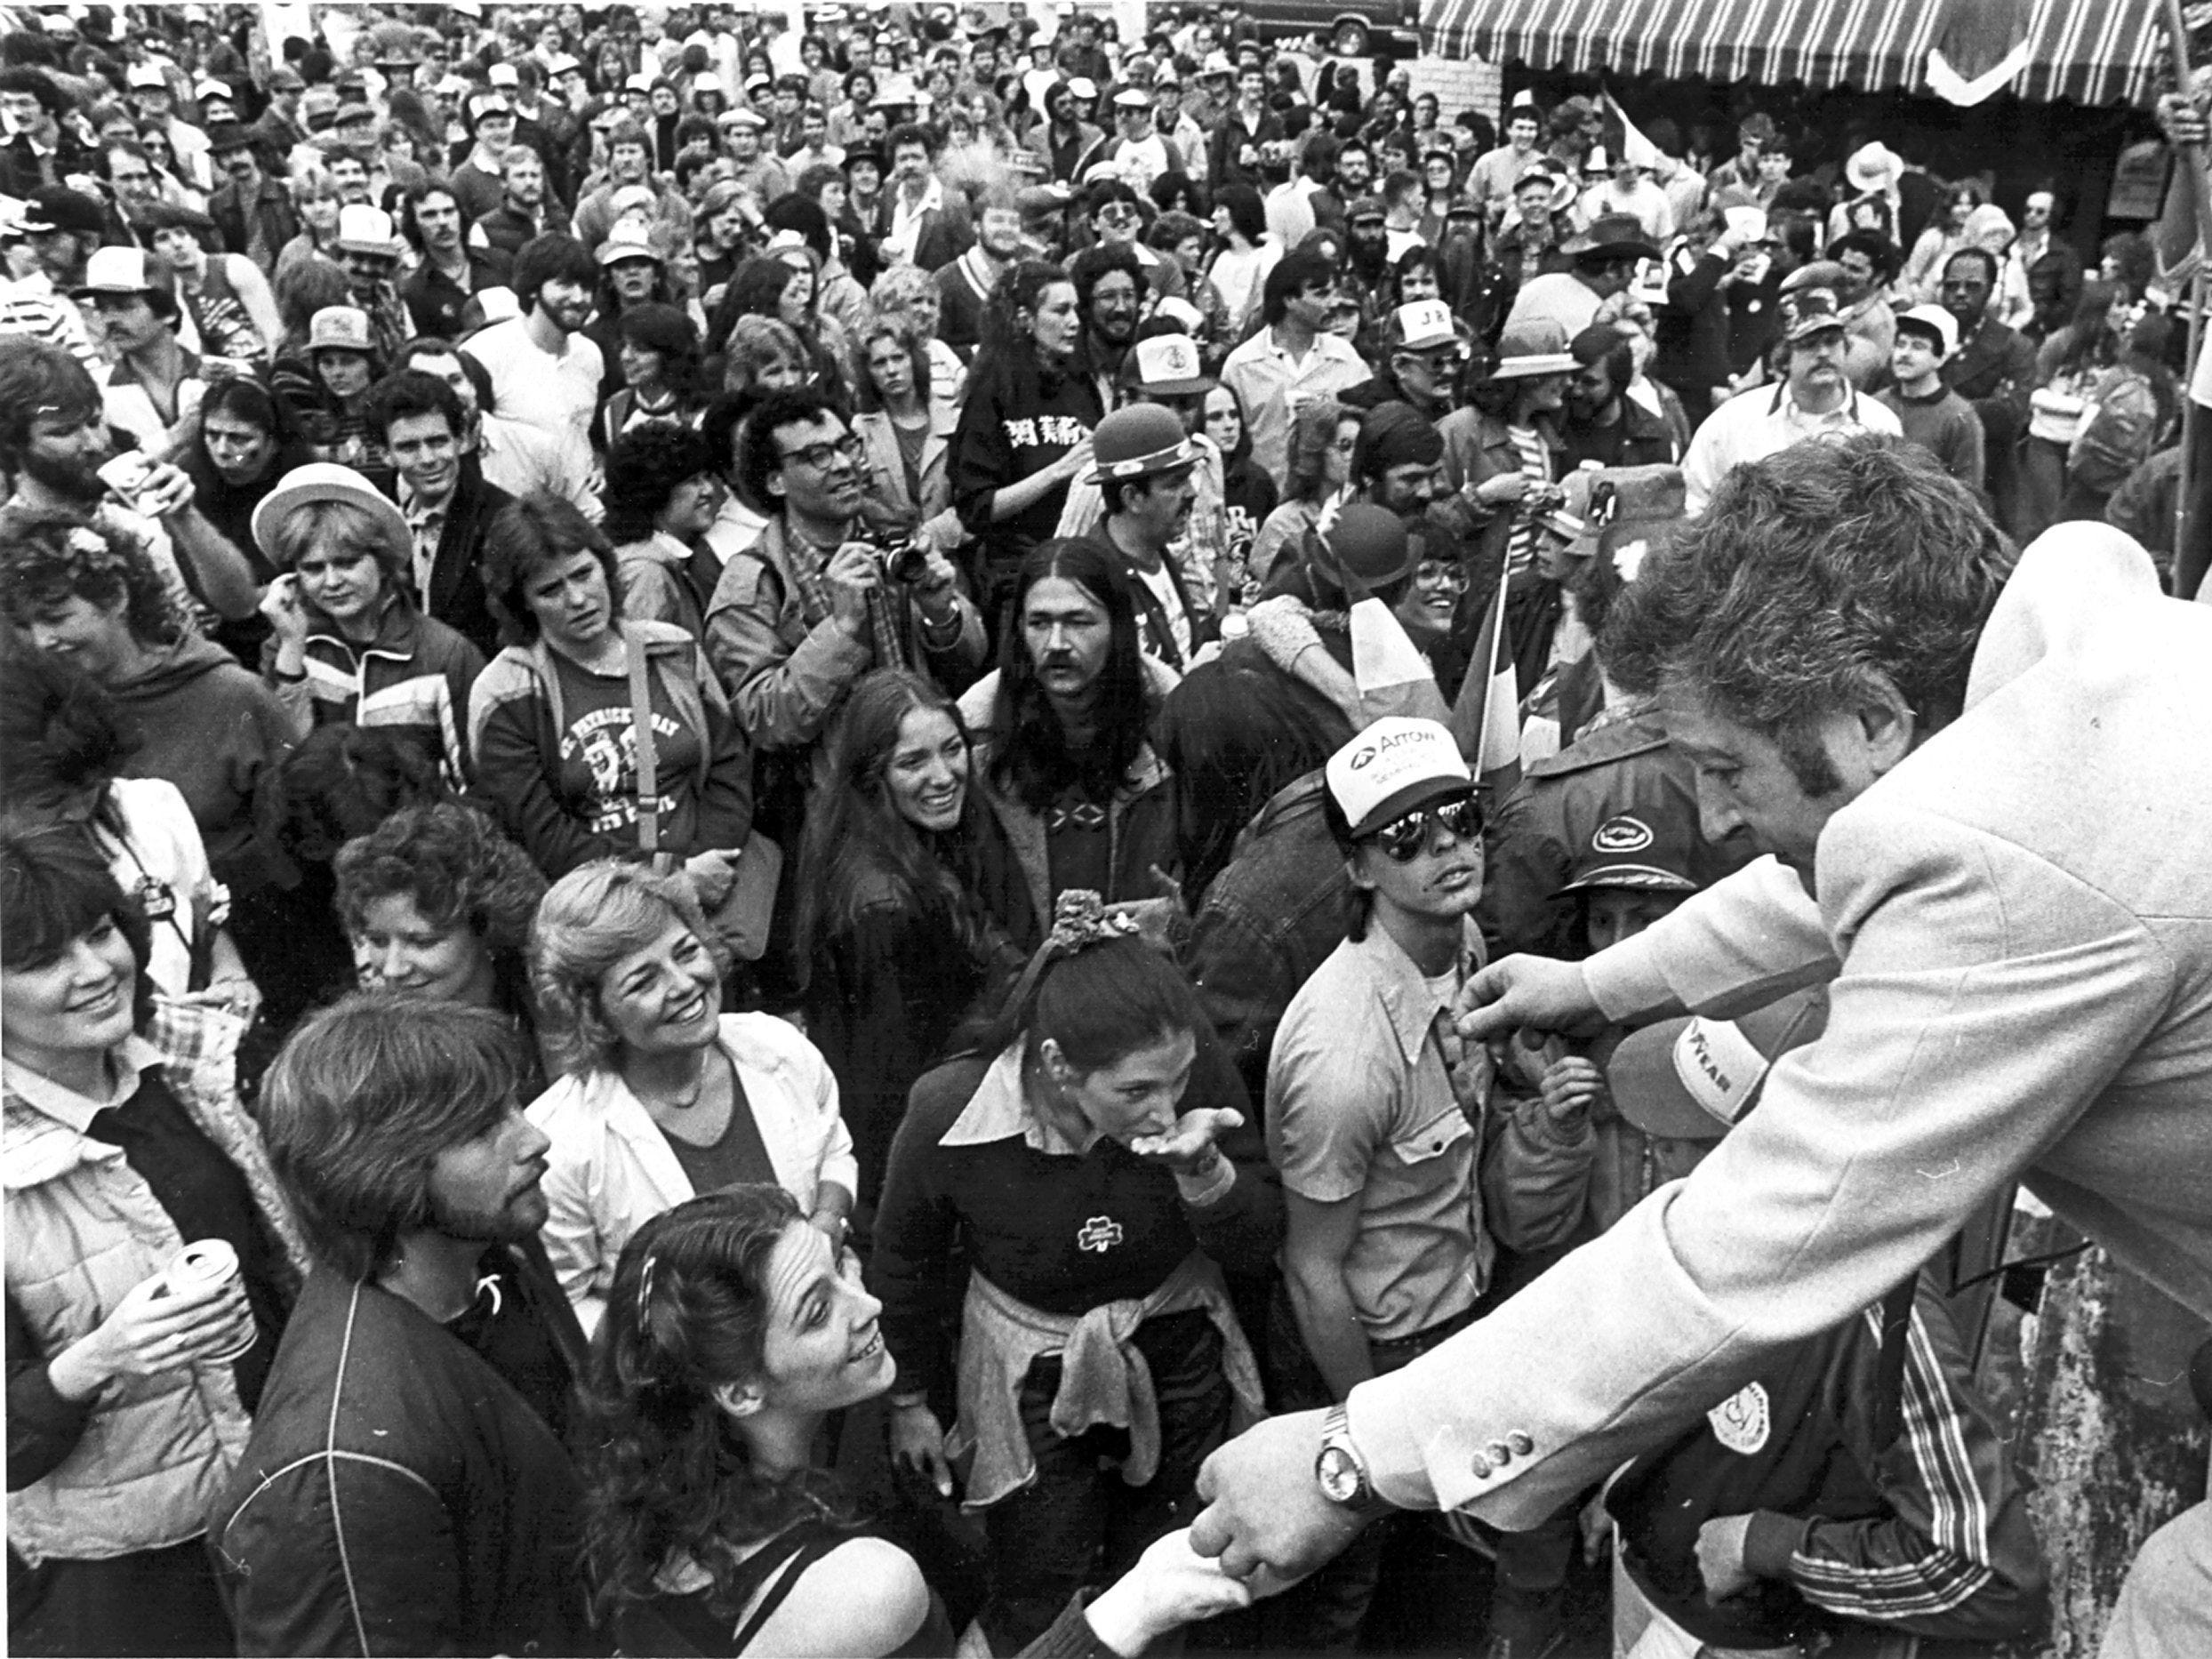 Visiting Irish matchmaker Jimmy White (Far Right) passes out Shamrocks to the huge crowd participating in the St. Patrick's Day Pub Crawl on 17 Mar 1982.